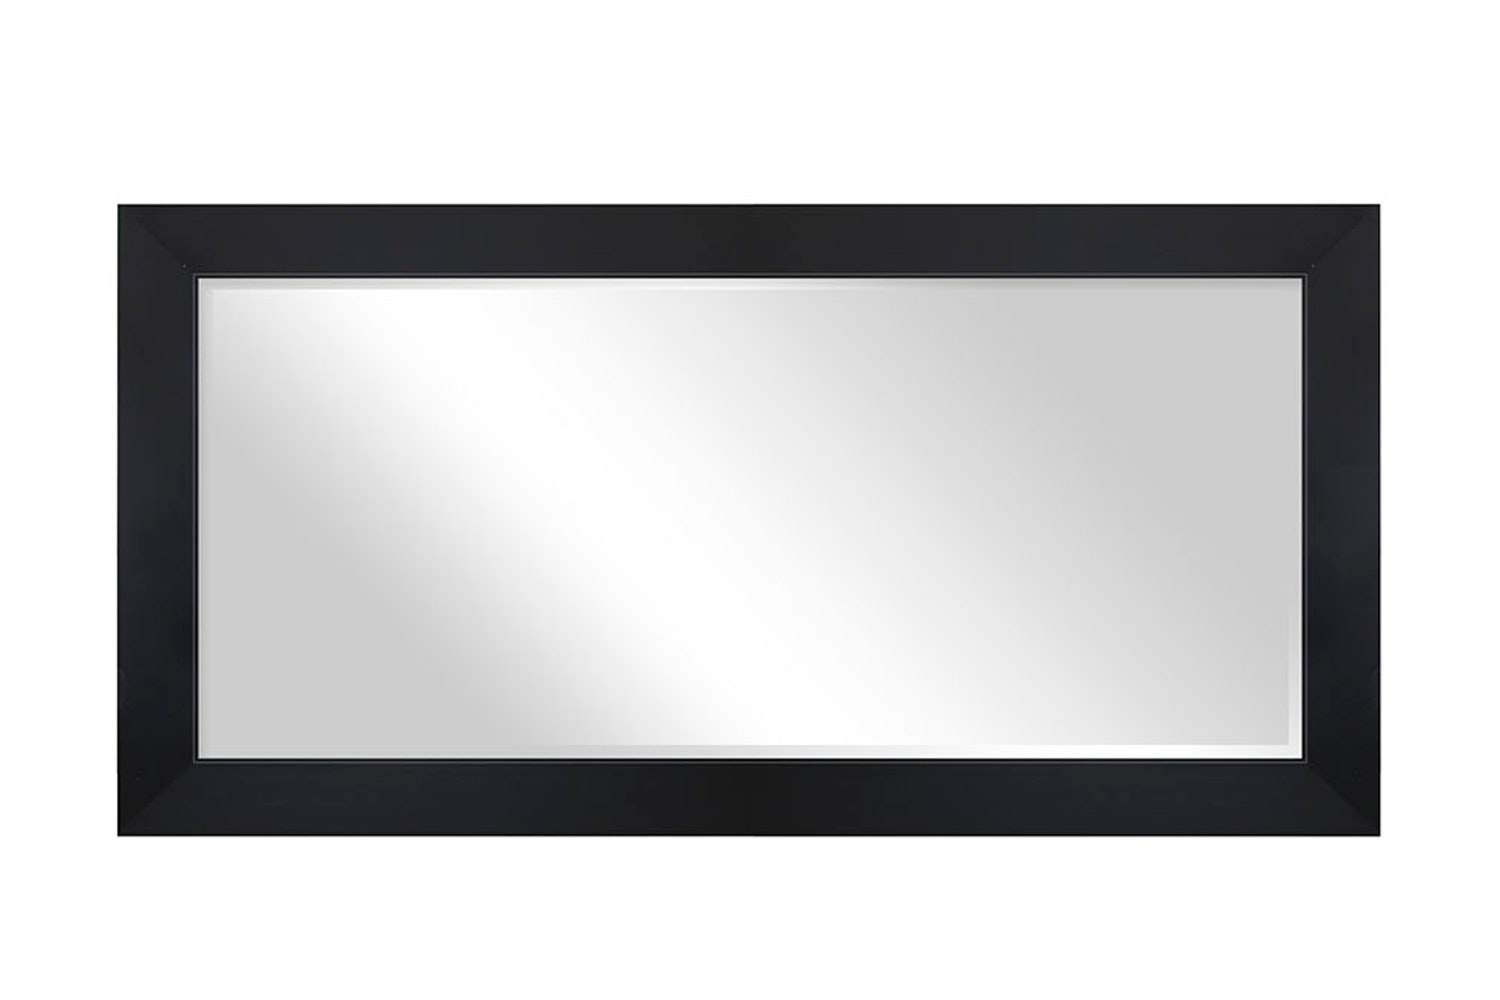 Turin Decorative Mirror Large - Black - Neko